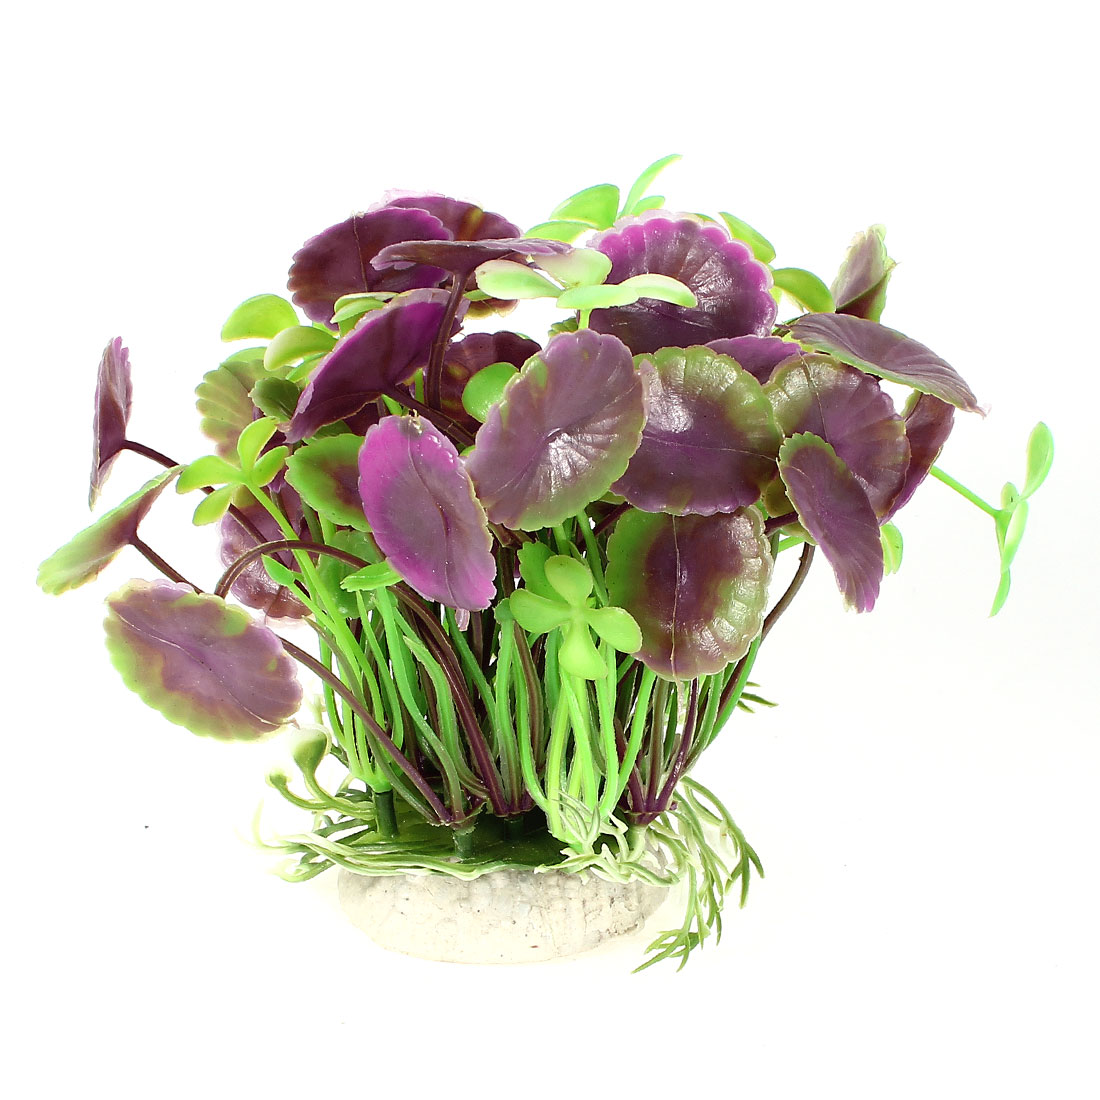 12cm Height Manmade Green Purple Grass Plant for Fish Tank Aquarium